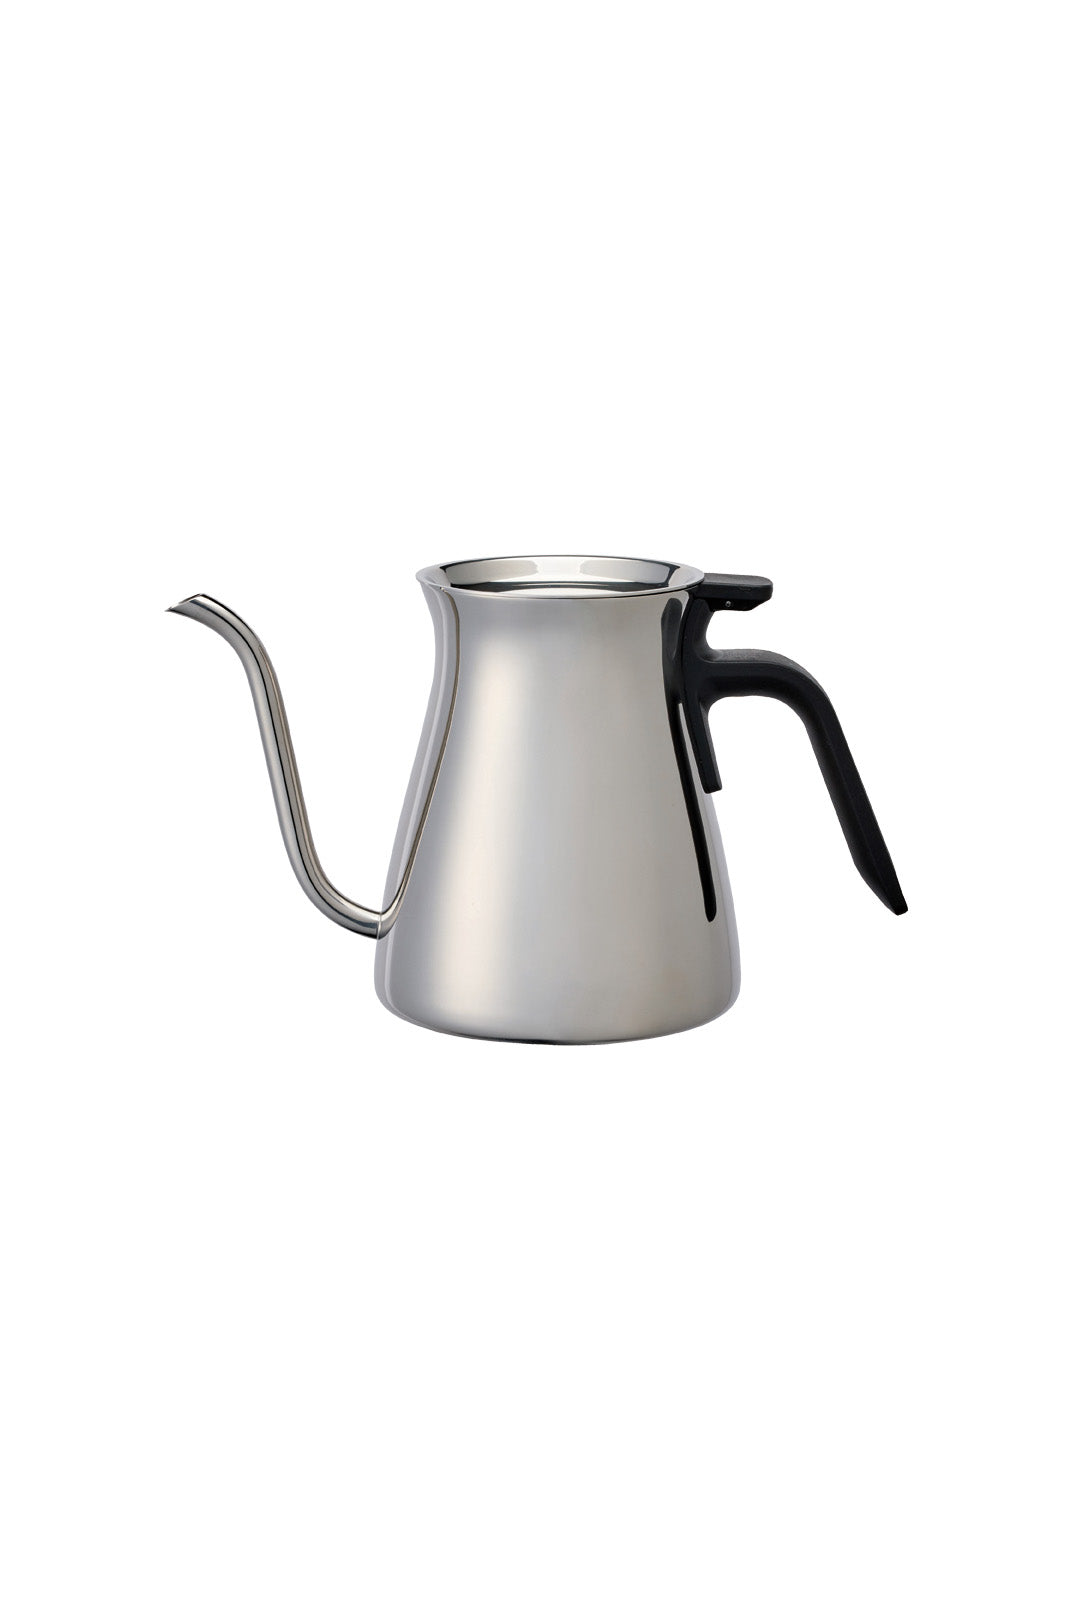 Kinto - Pour Over Kettle - Mirror Stainless Steel